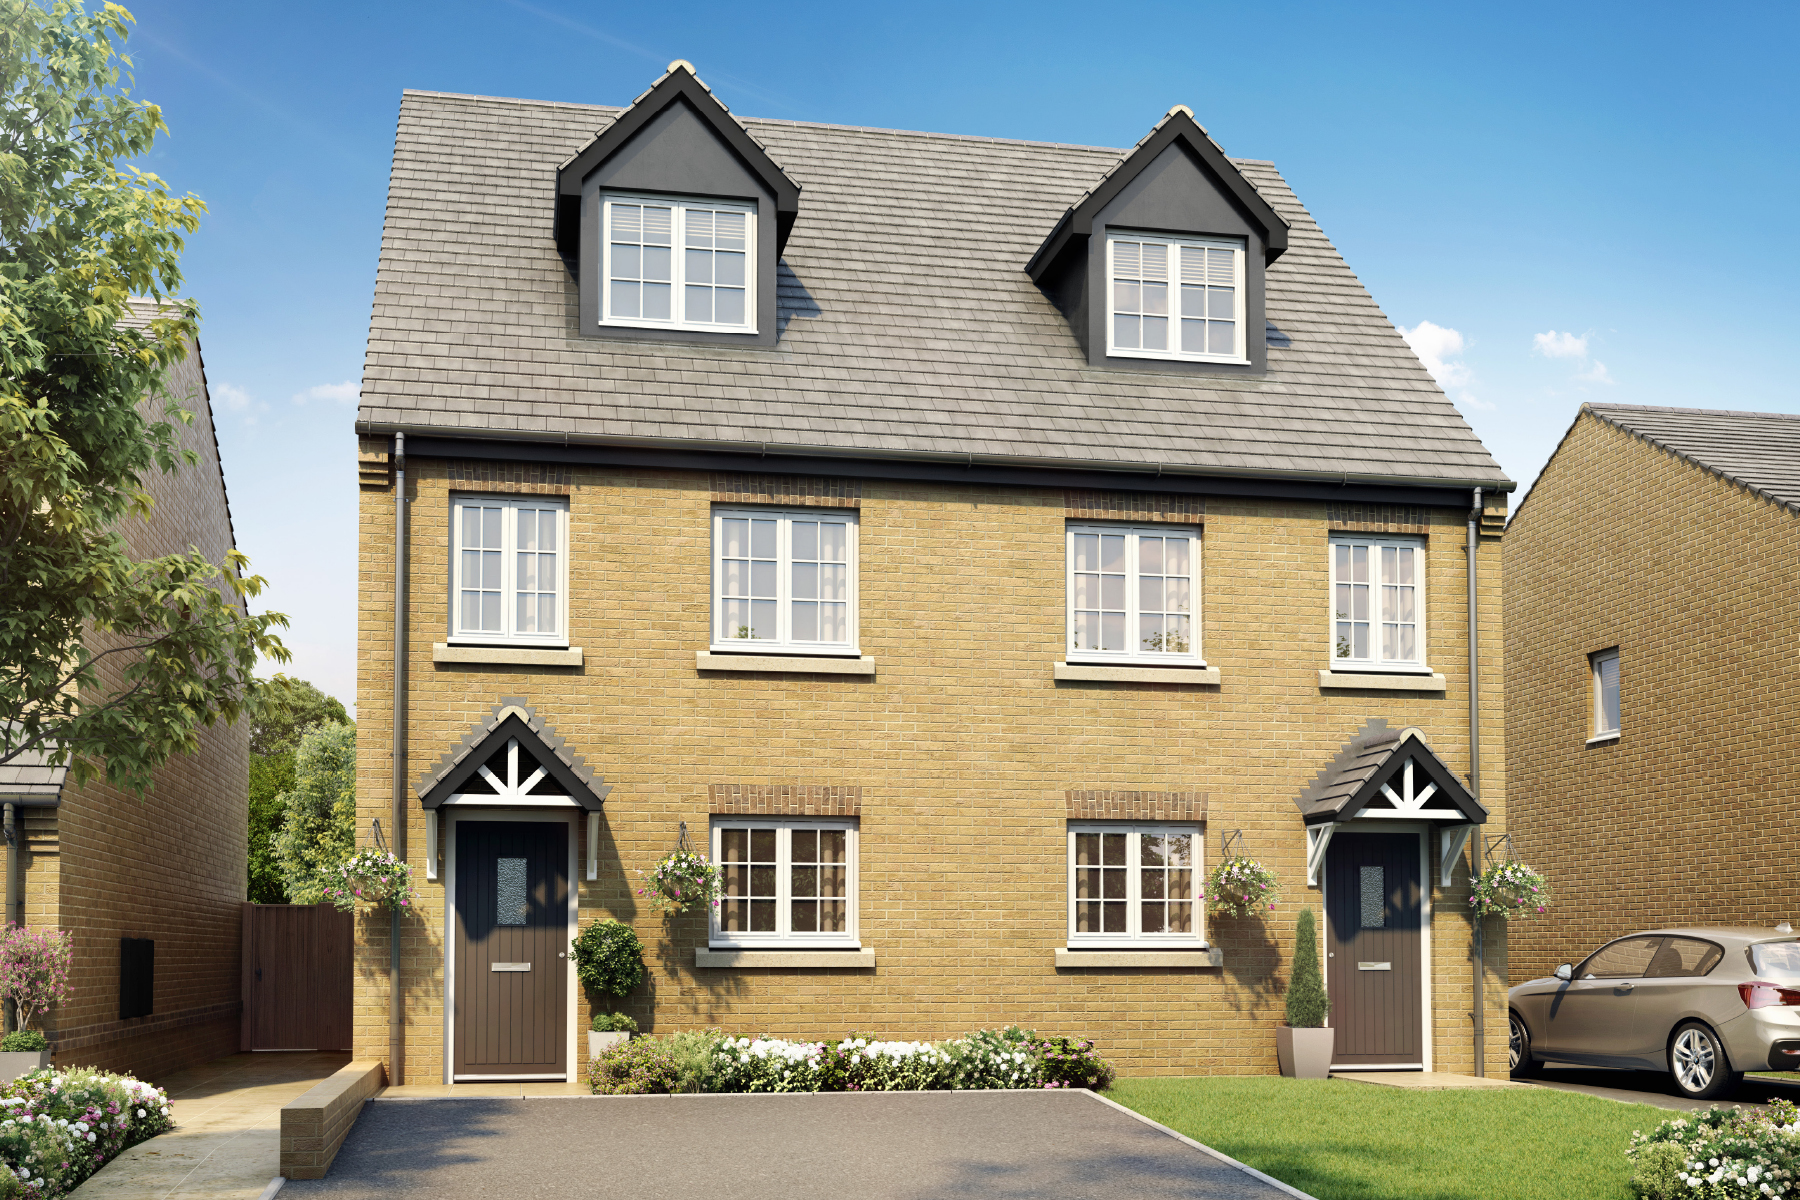 New TWY - Foxley Meadows - CGI - Alton-G